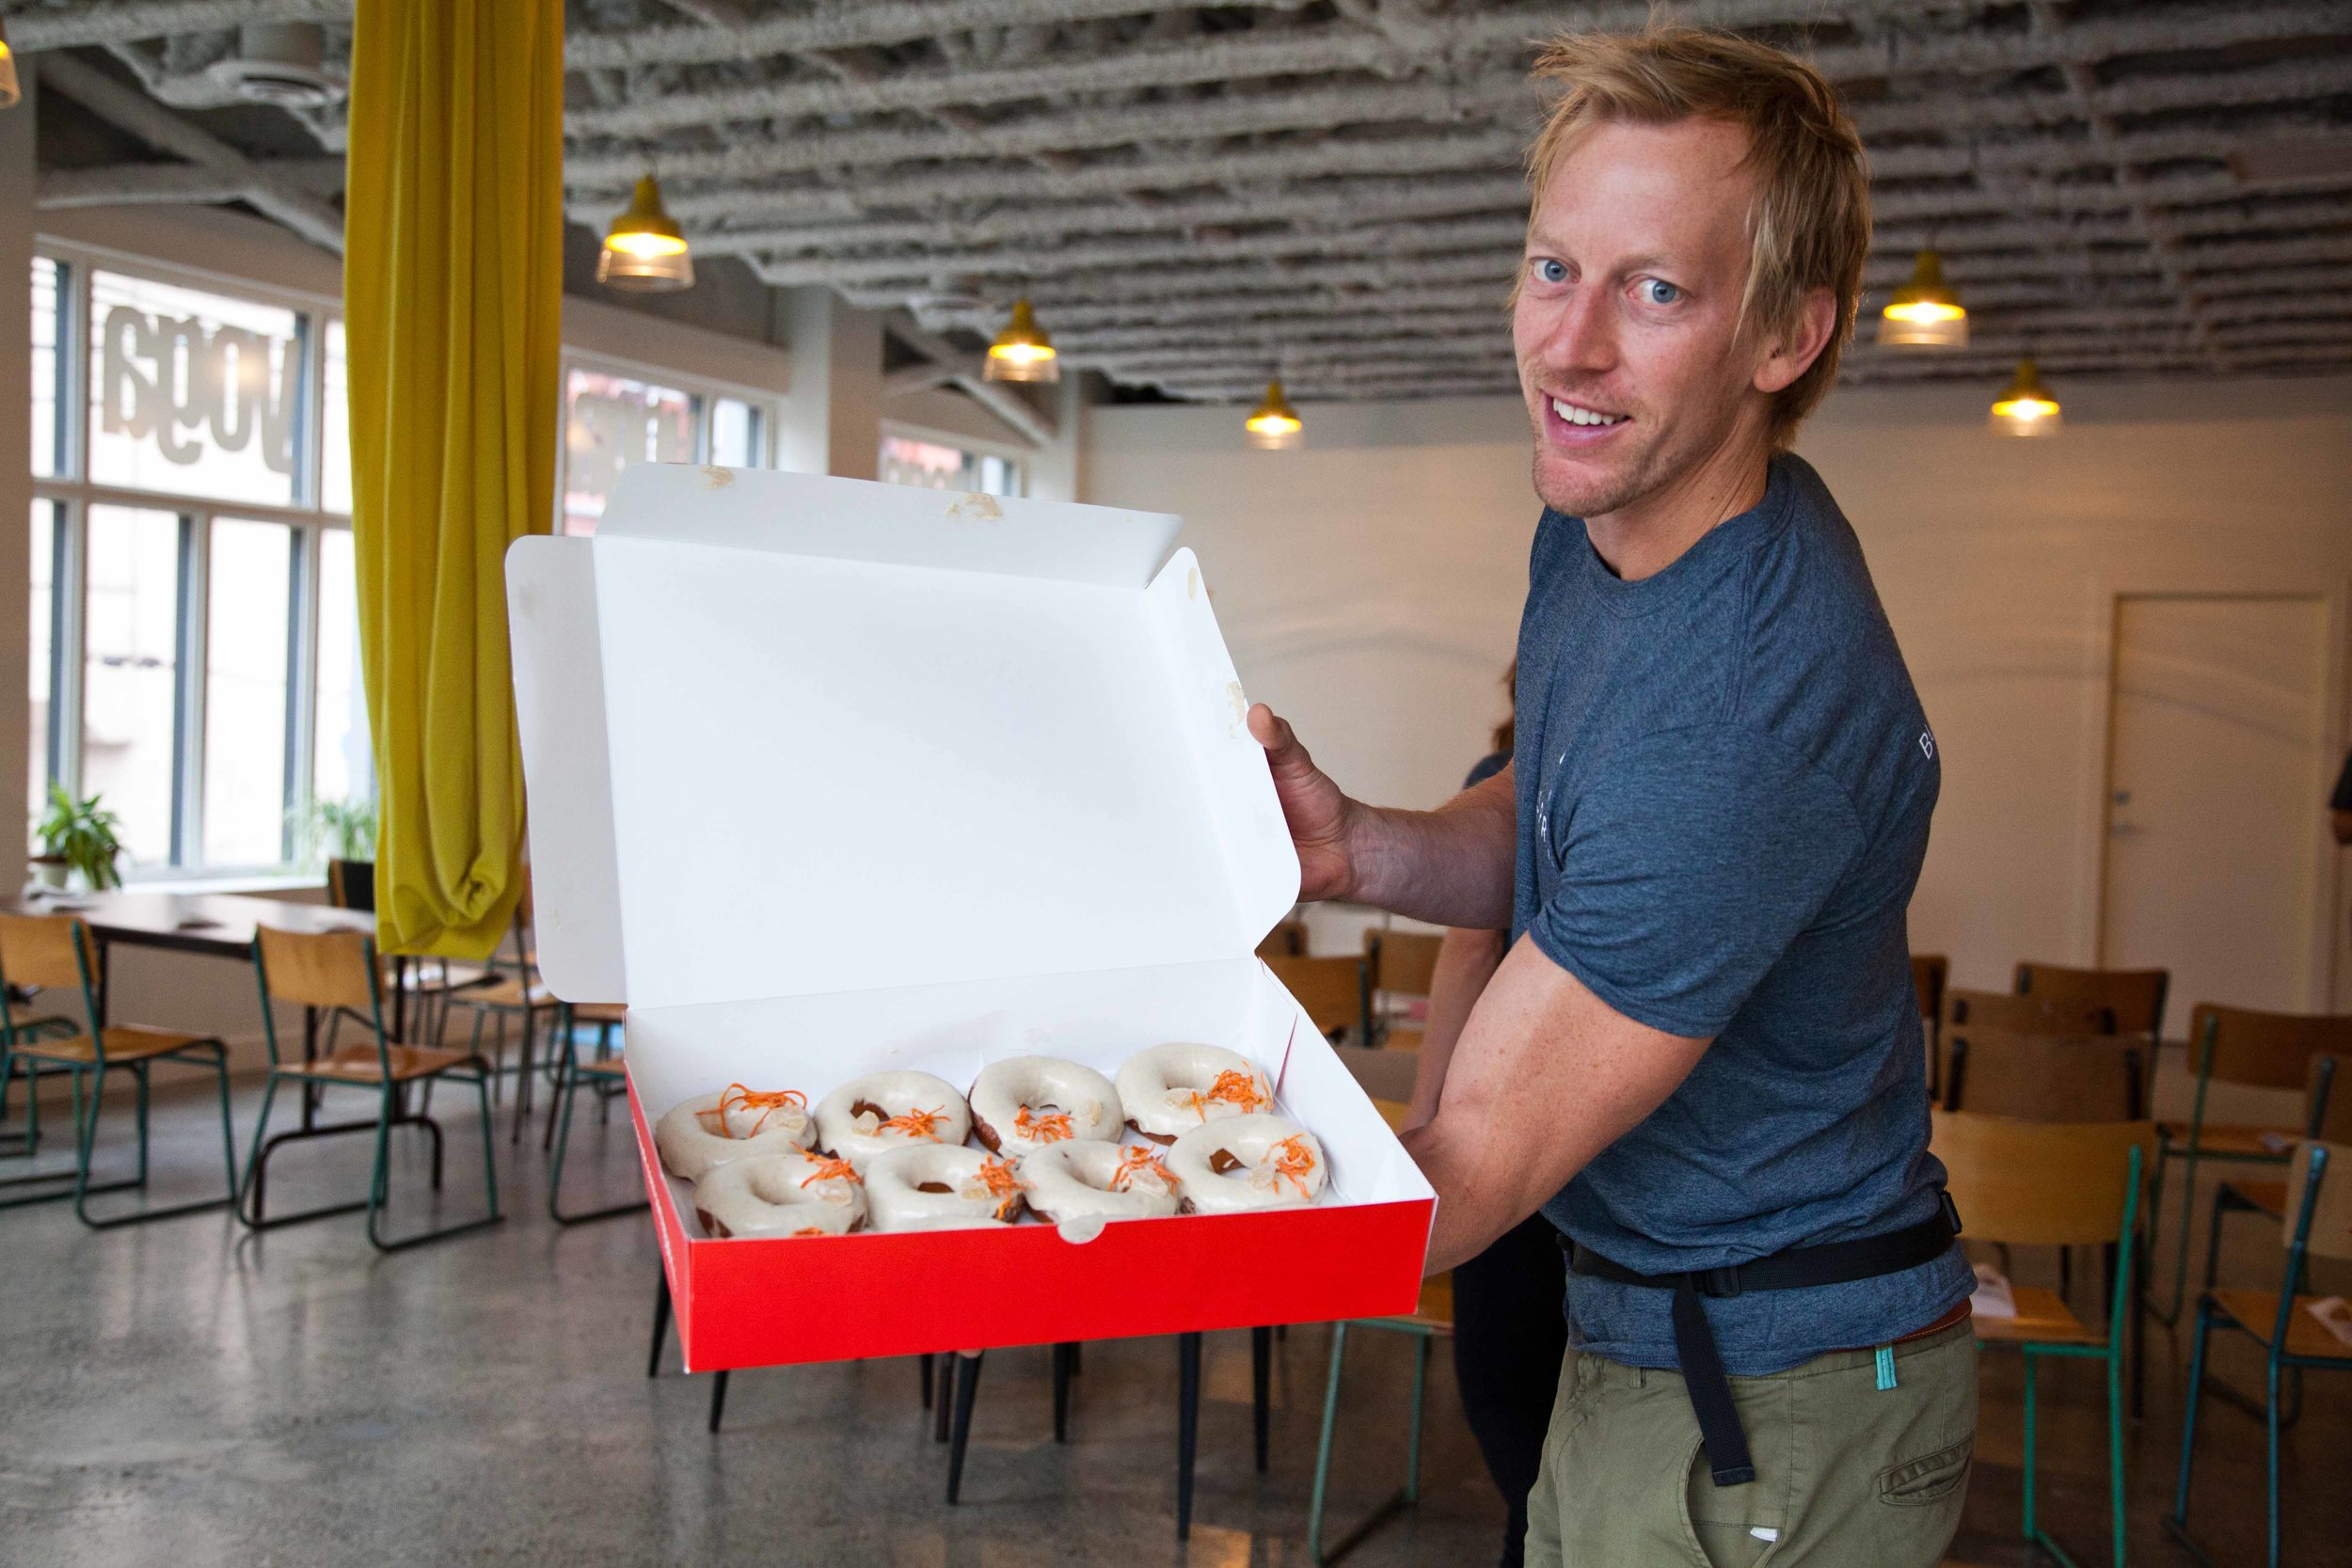 Donut rush at a Growth Hacking event at Stretch Yoga. Mmmm. Photo credit: Maxine Bulloch